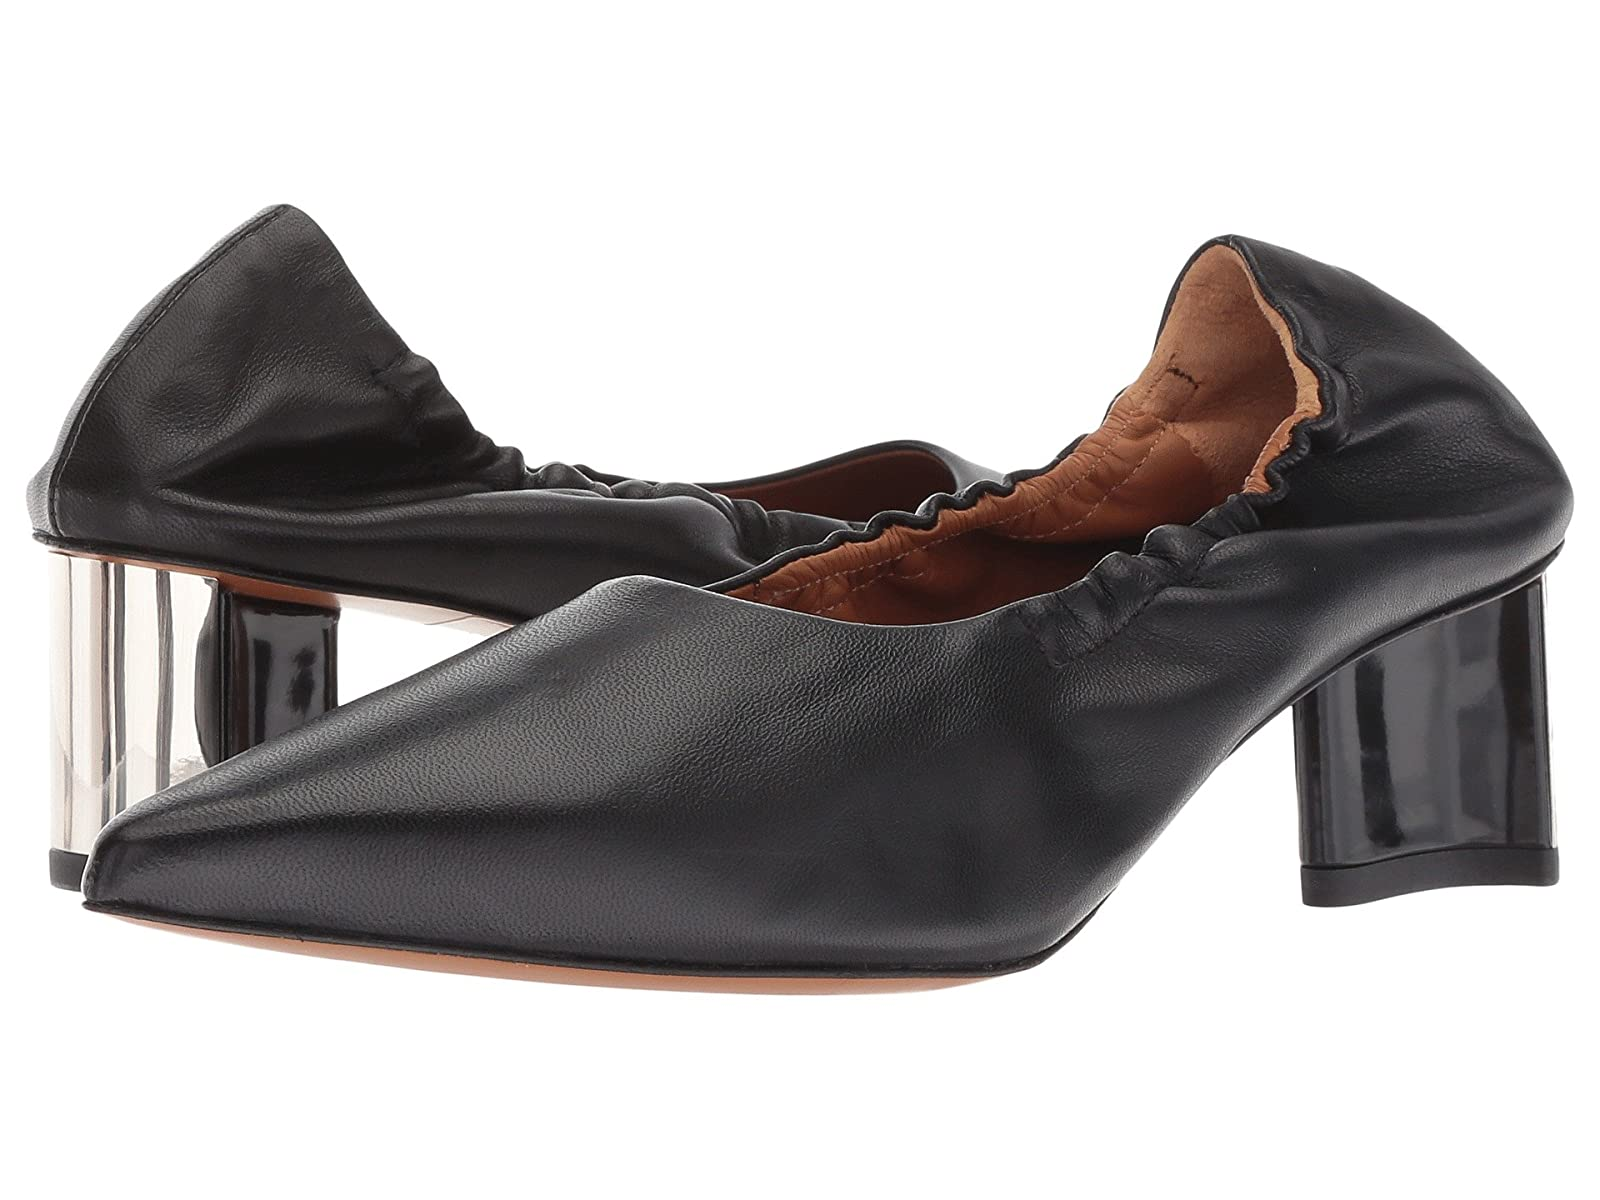 Clergerie SolalAtmospheric grades have affordable shoes